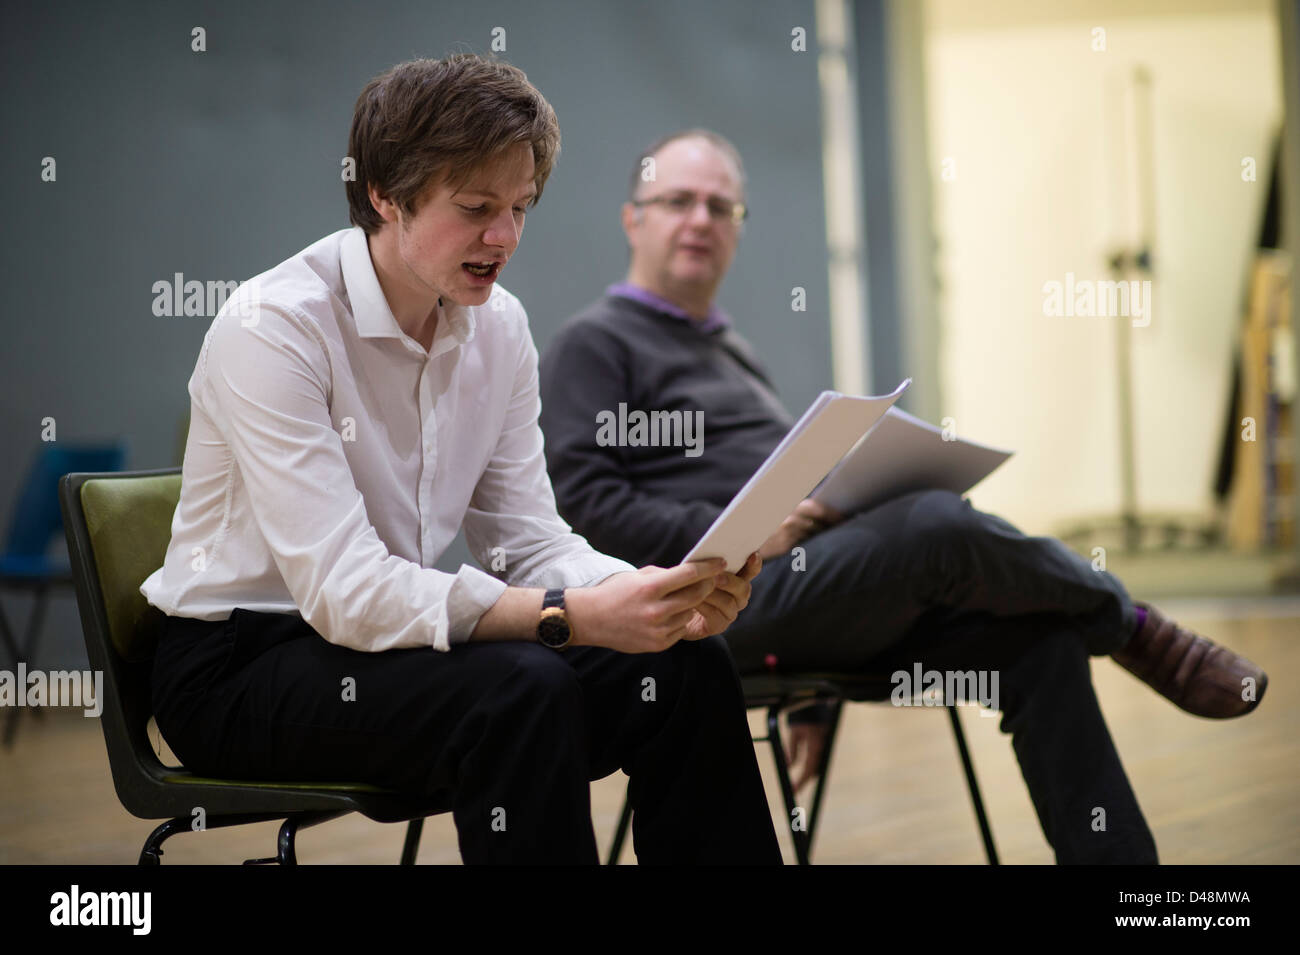 Actors in rehearsal, holding their scripts, reading lines of dialogue from a new play, UK - Stock Image